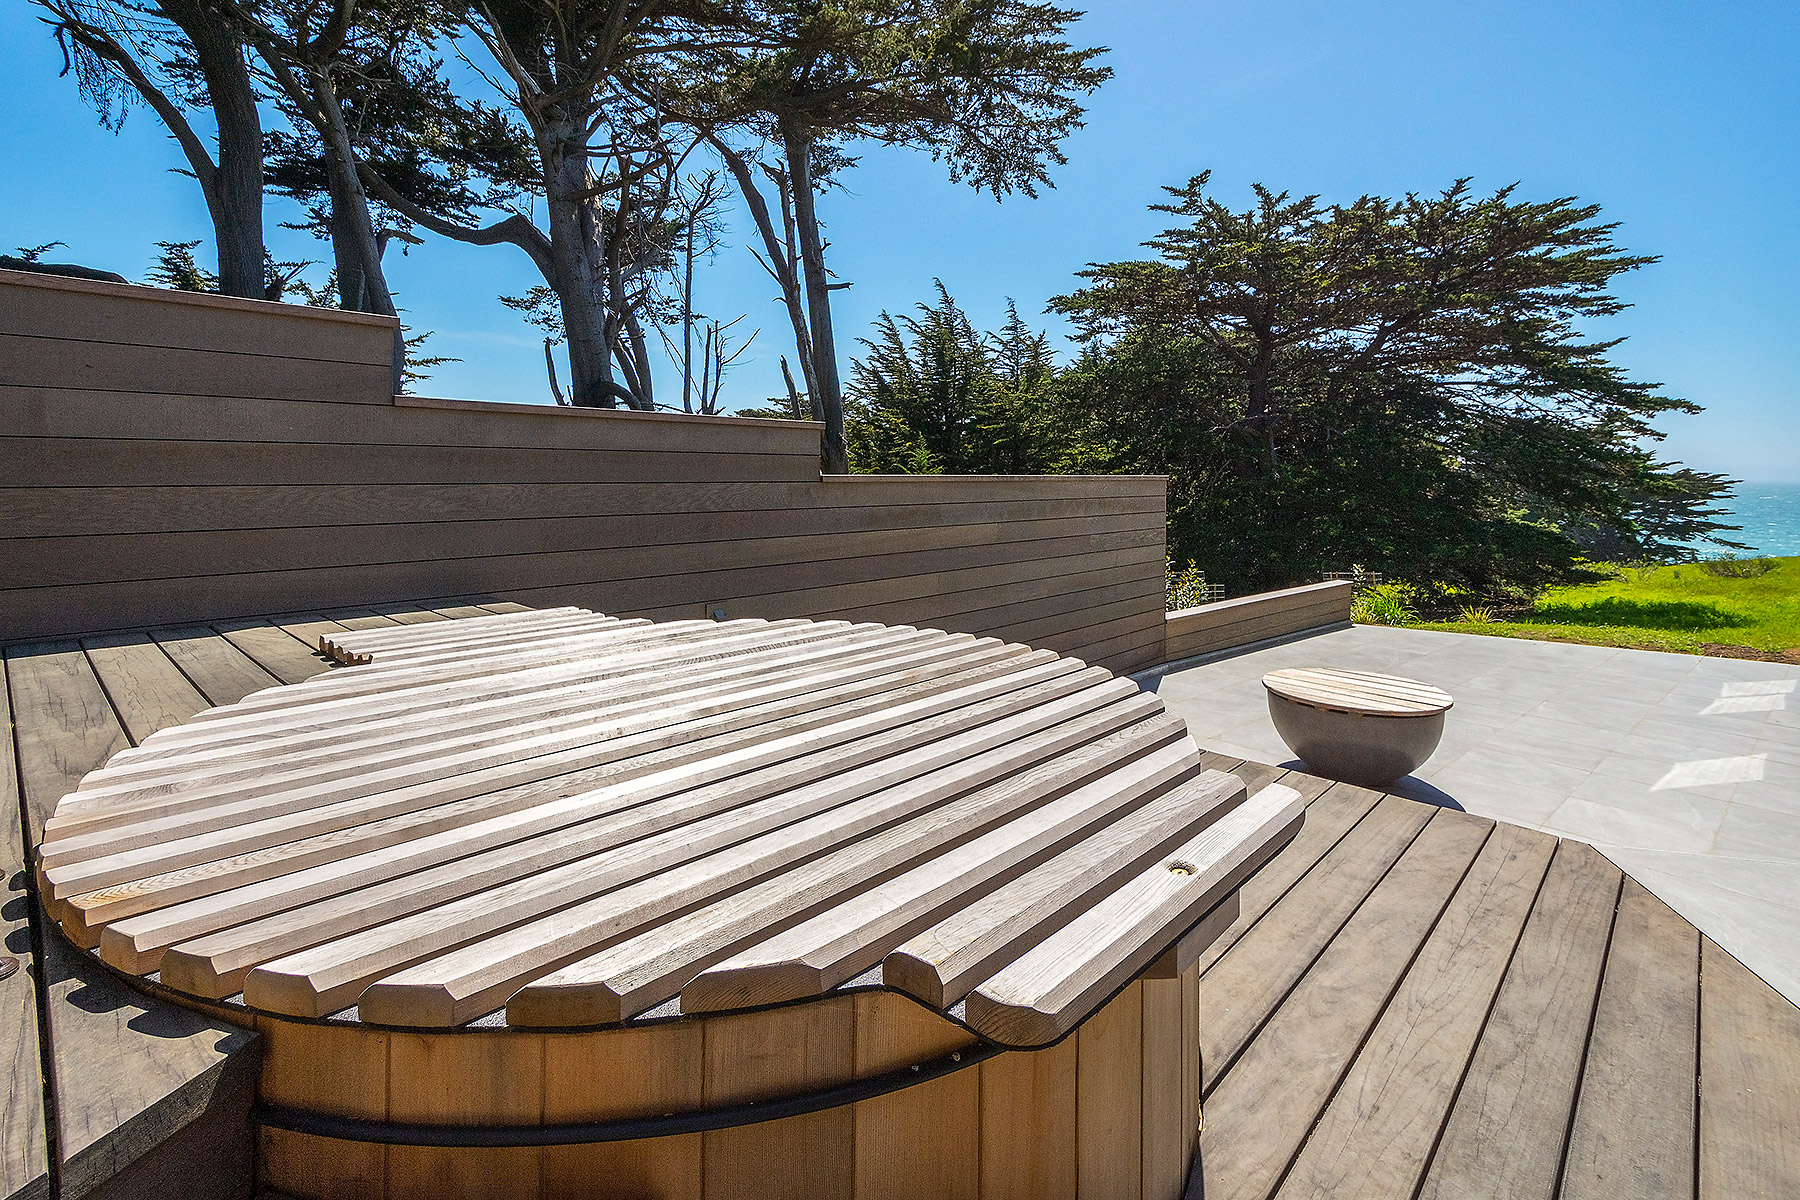 Hot Tub with Custom Roll-up Cover